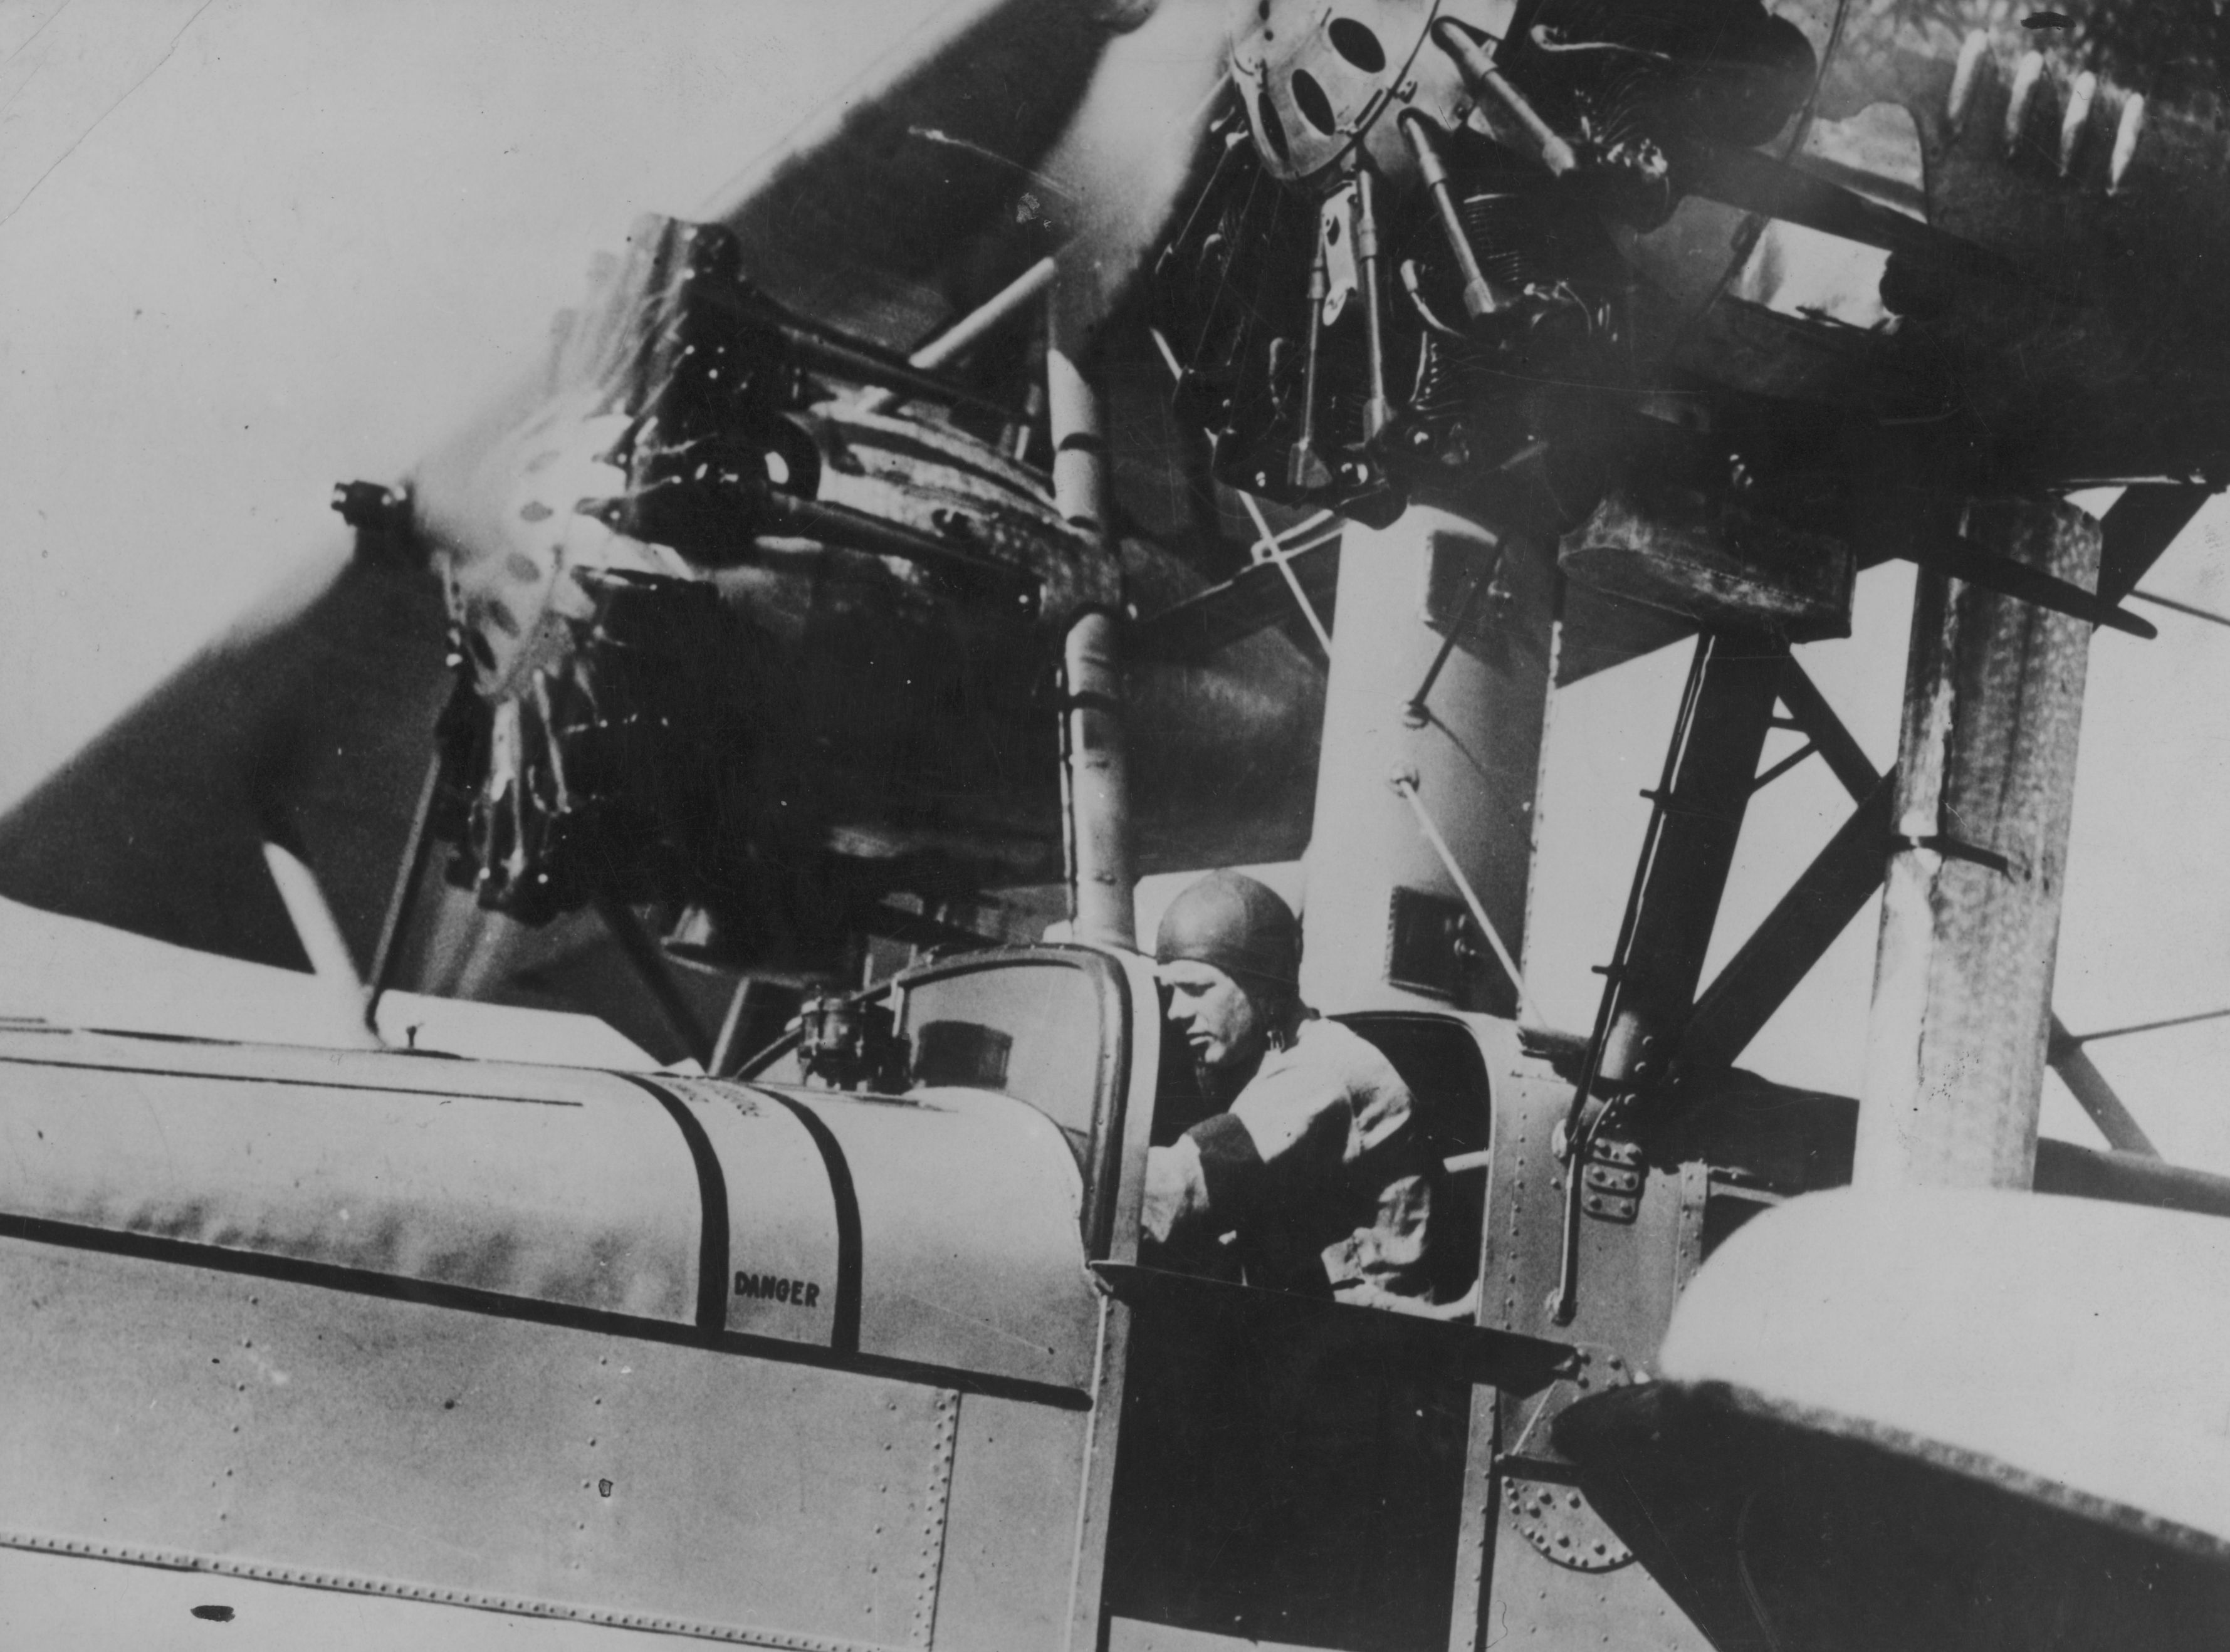 Black and white photo of pilot Charles Lindbergh in the cockpit of a postal plane.